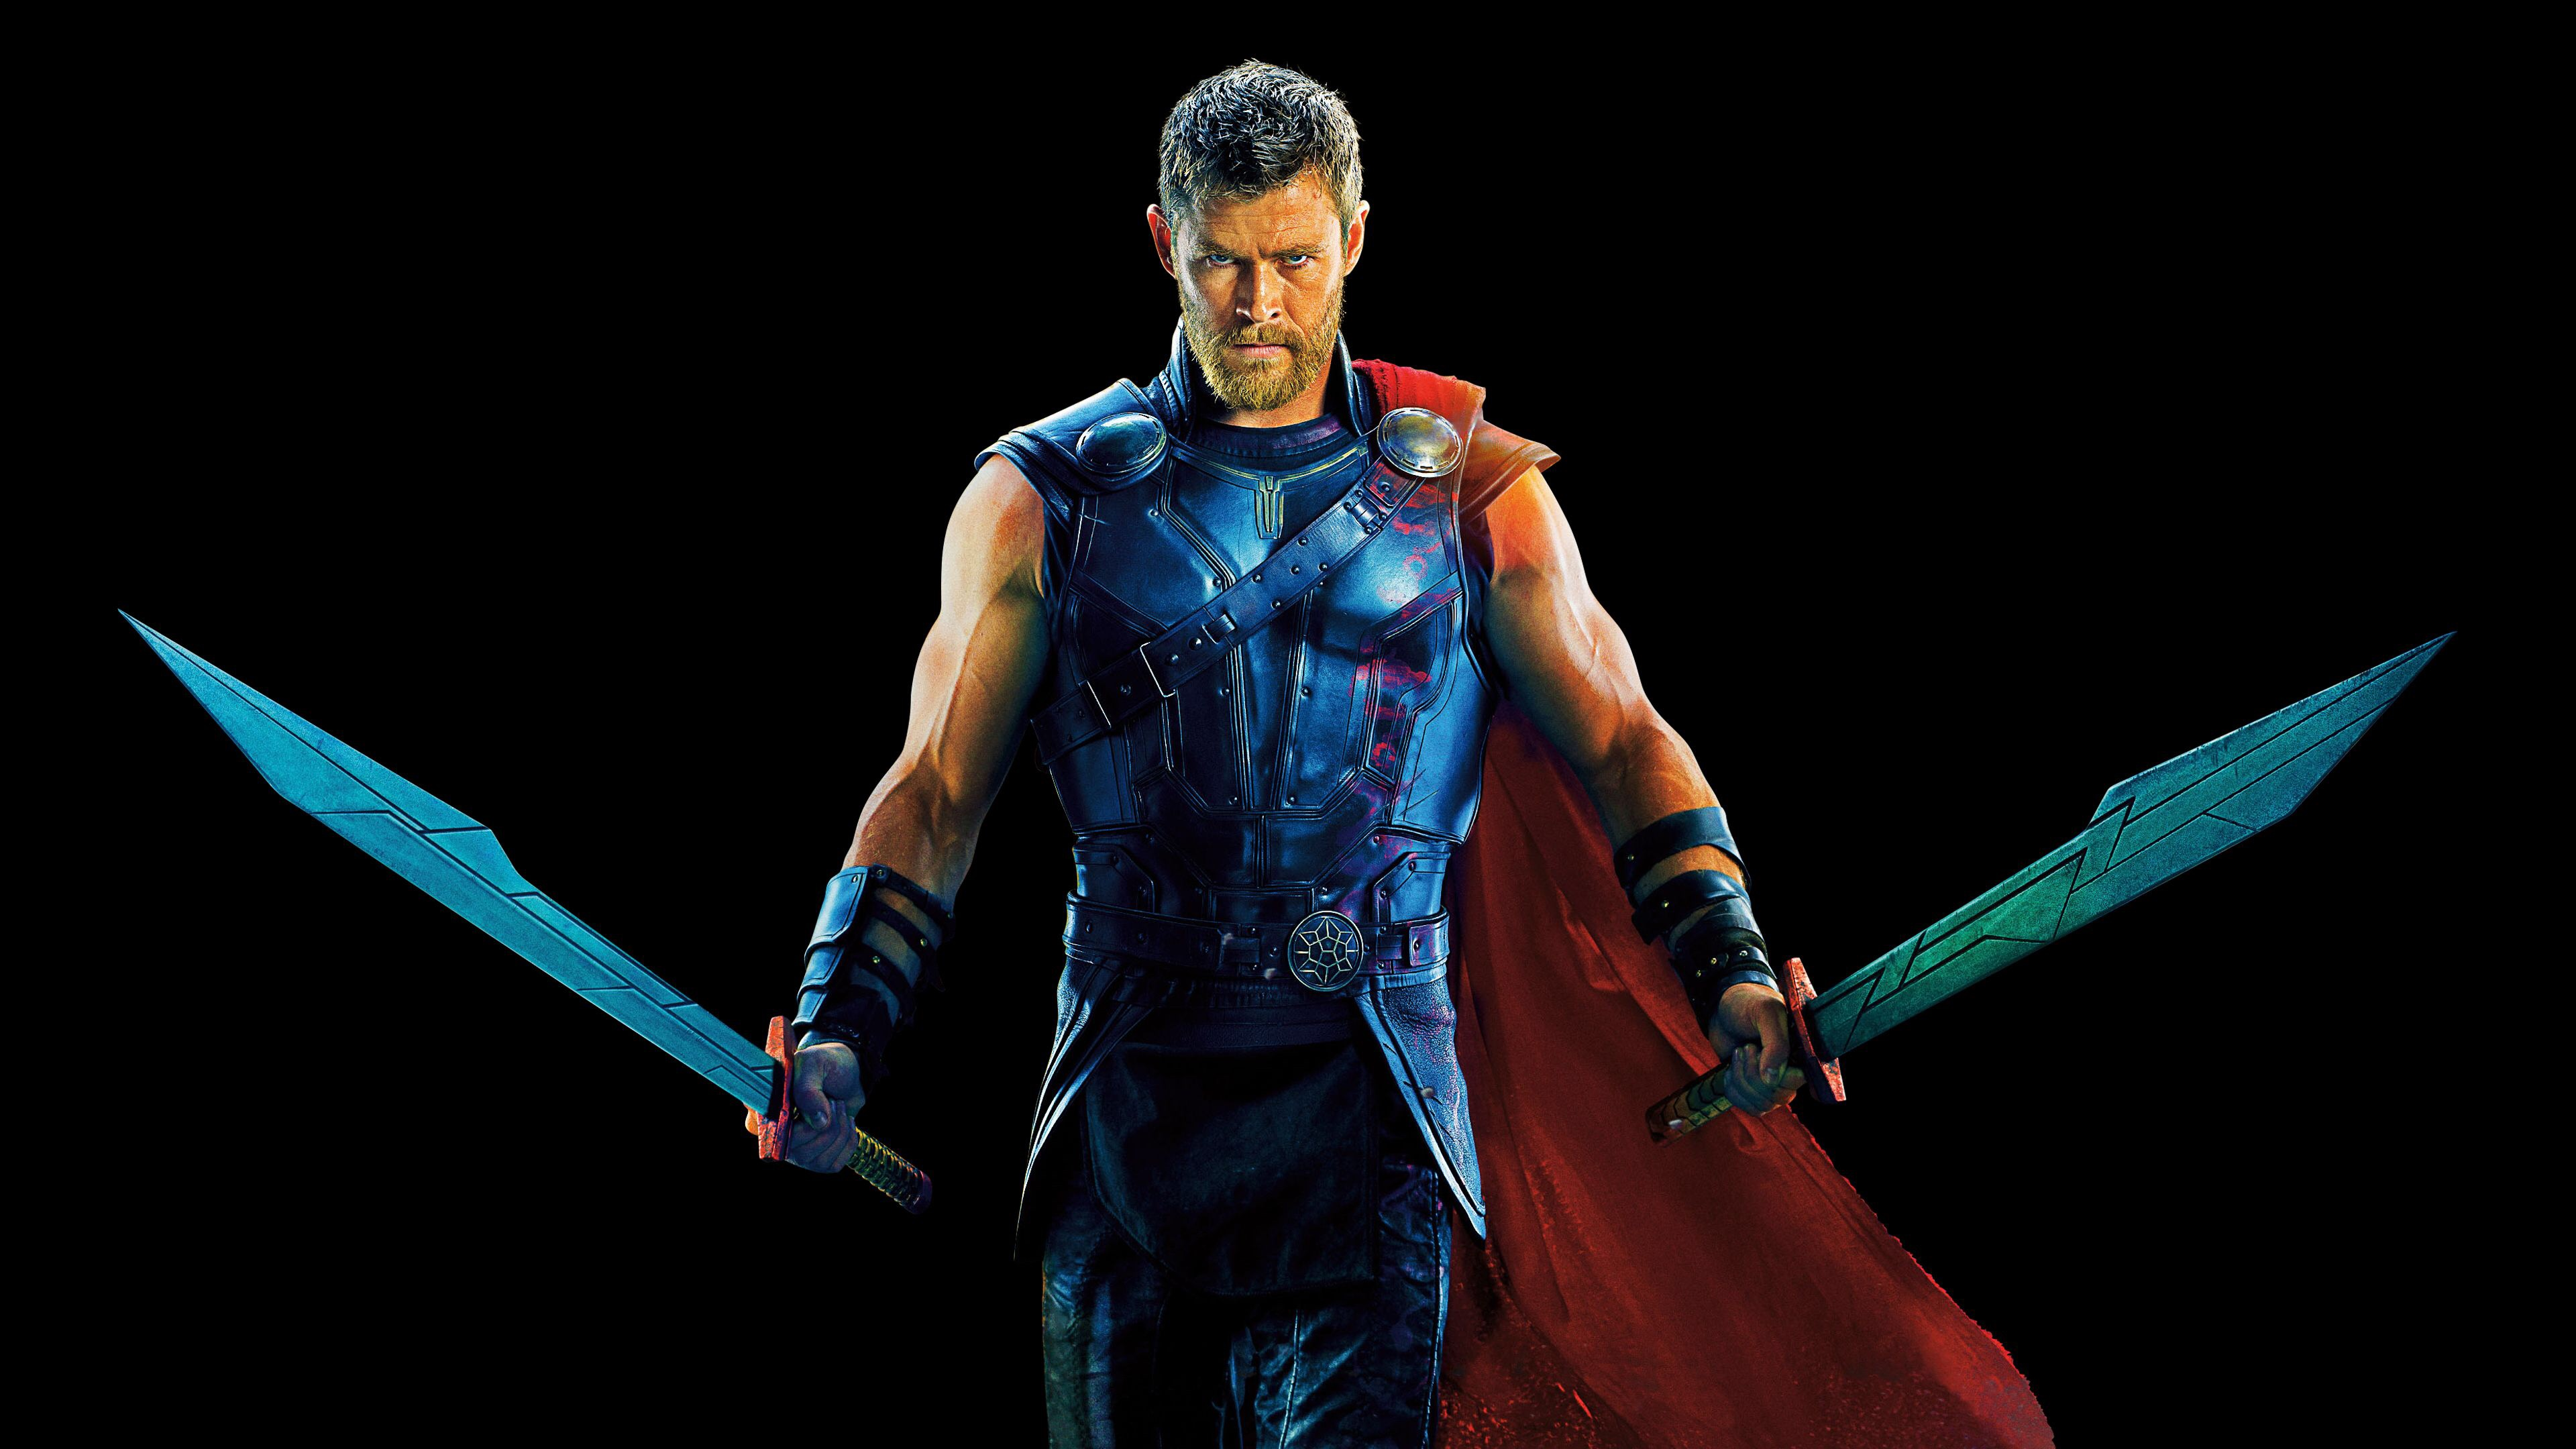 An image of Thor from Ragnarok walking forwards with two large swords